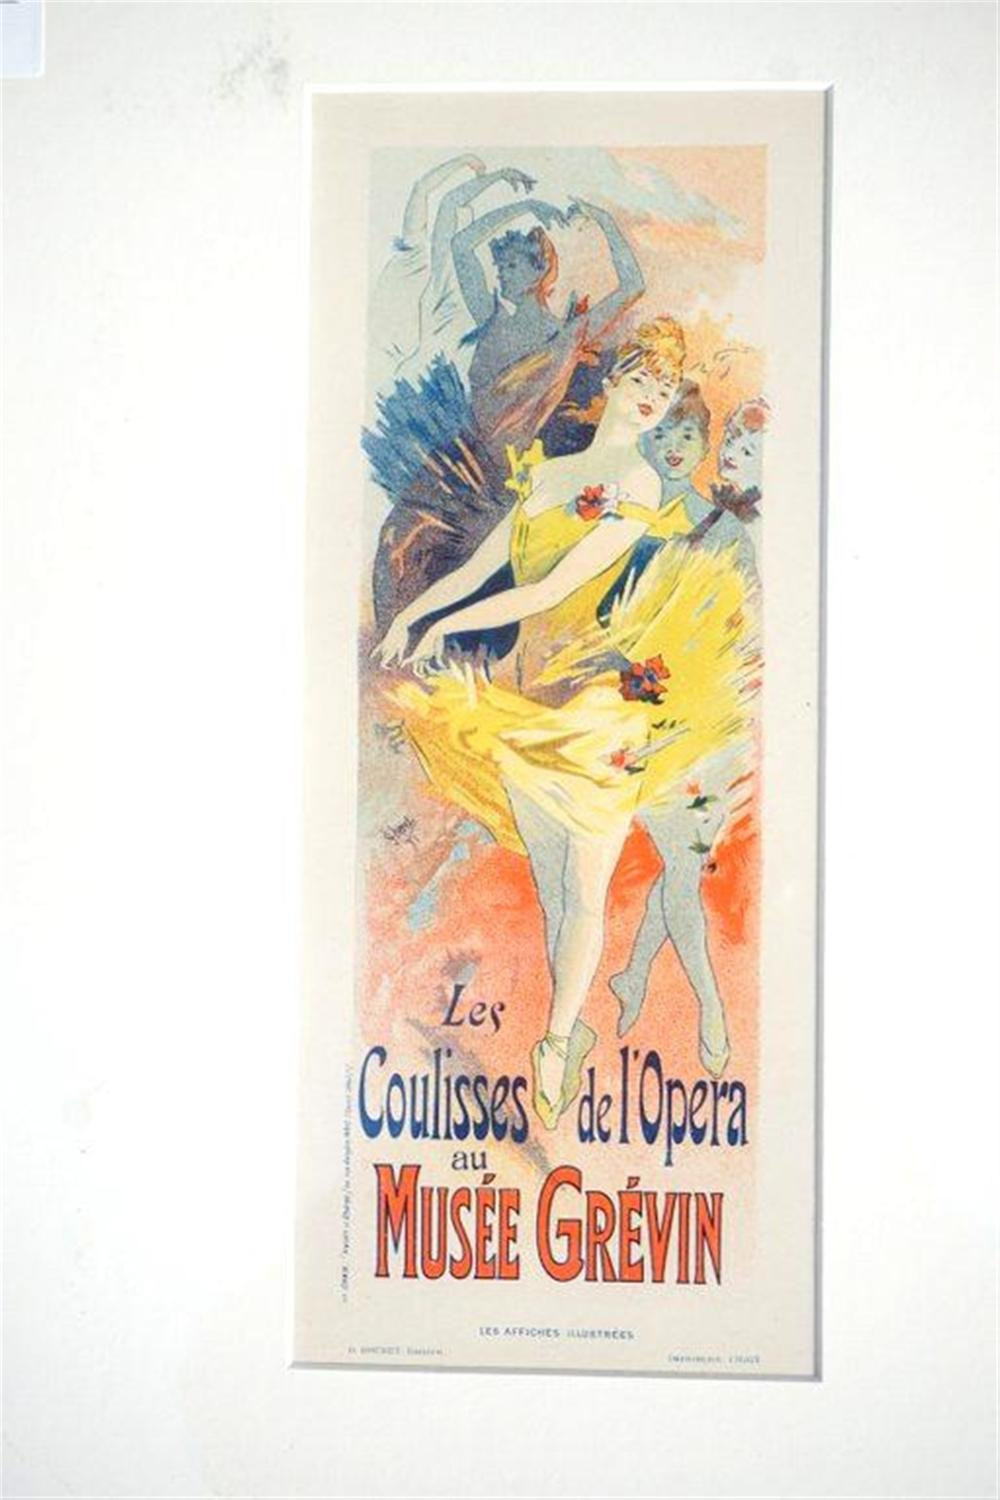 "1896 CHERET STONE LITHO POSTER LES COULISSES DE L'OPERA AU MUSEE GREVIN, SHEET SIZE 8 3/4"" X 12 1/4"", EXCELLENT CONDITION, SHRINK WRAPPED AND MATTED, FROM RETIRED DEALERS COLLECTION."